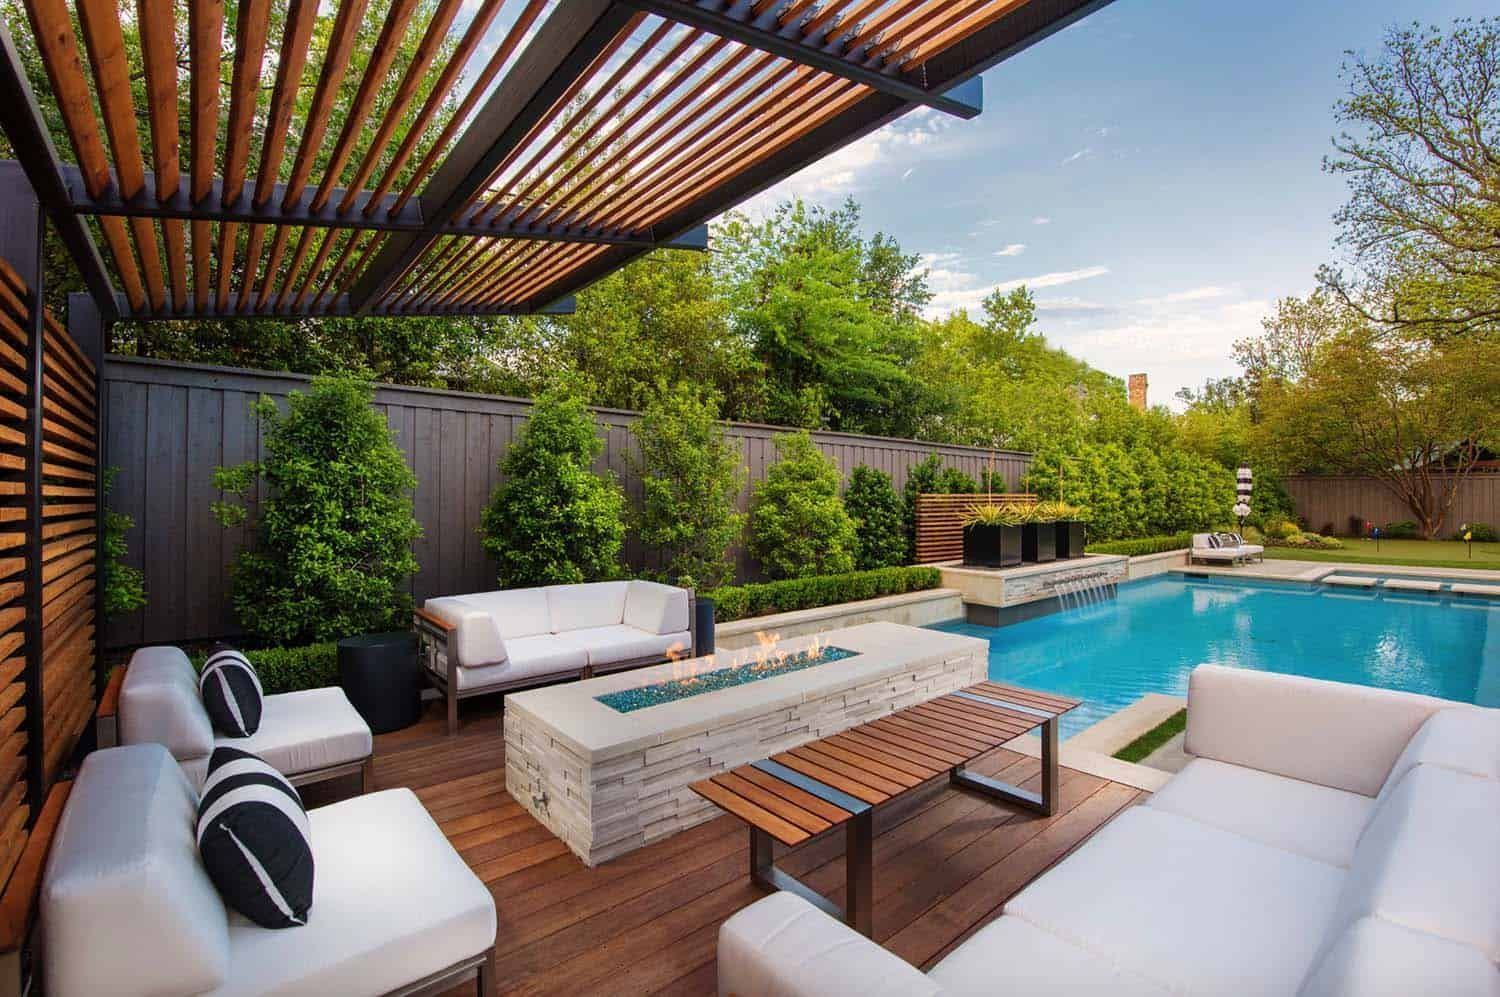 28 Inspiring Fire Pit Ideas To Create A Fabulous Backyard Oasis Modern Backyard Backyard Oasis Modern Pools